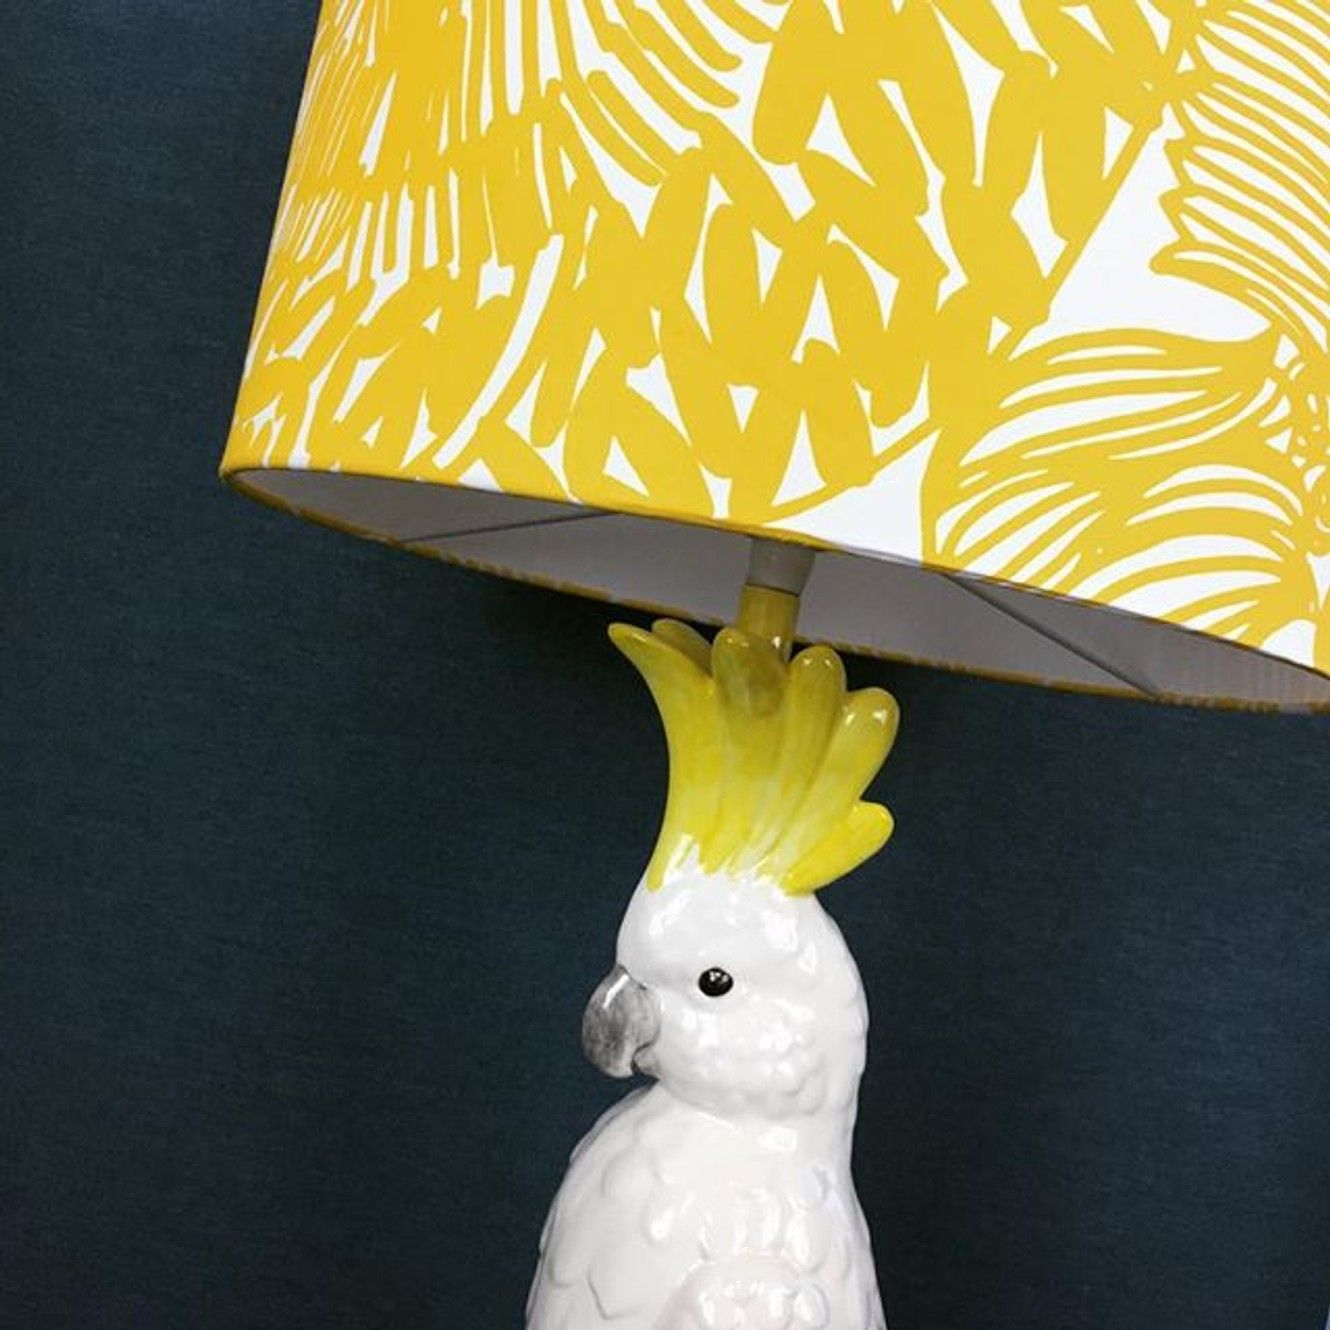 Table Lamps With Personality Australian Made Cockatoo Lamps And All Other Hand Painted Lamps In 2020 Painting Lamp Shades Animal Lamp Handmade Lampshades